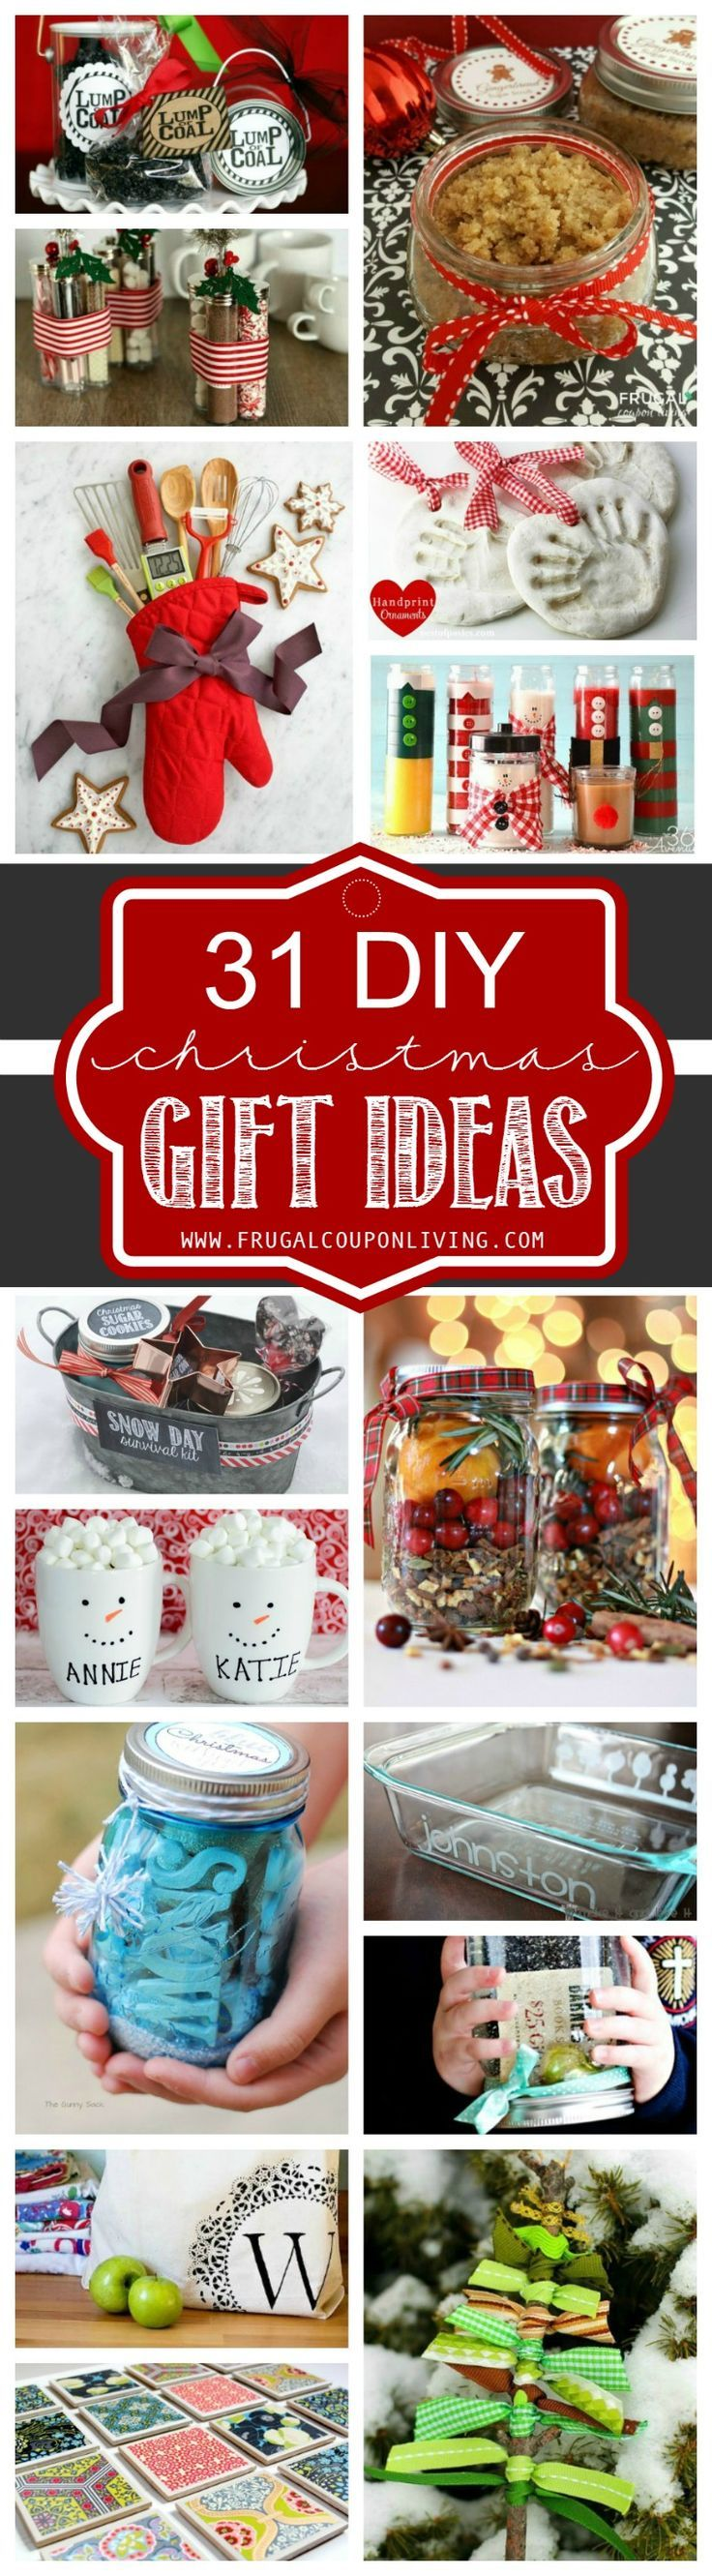 Crafty christmas gift ideas for coworkers